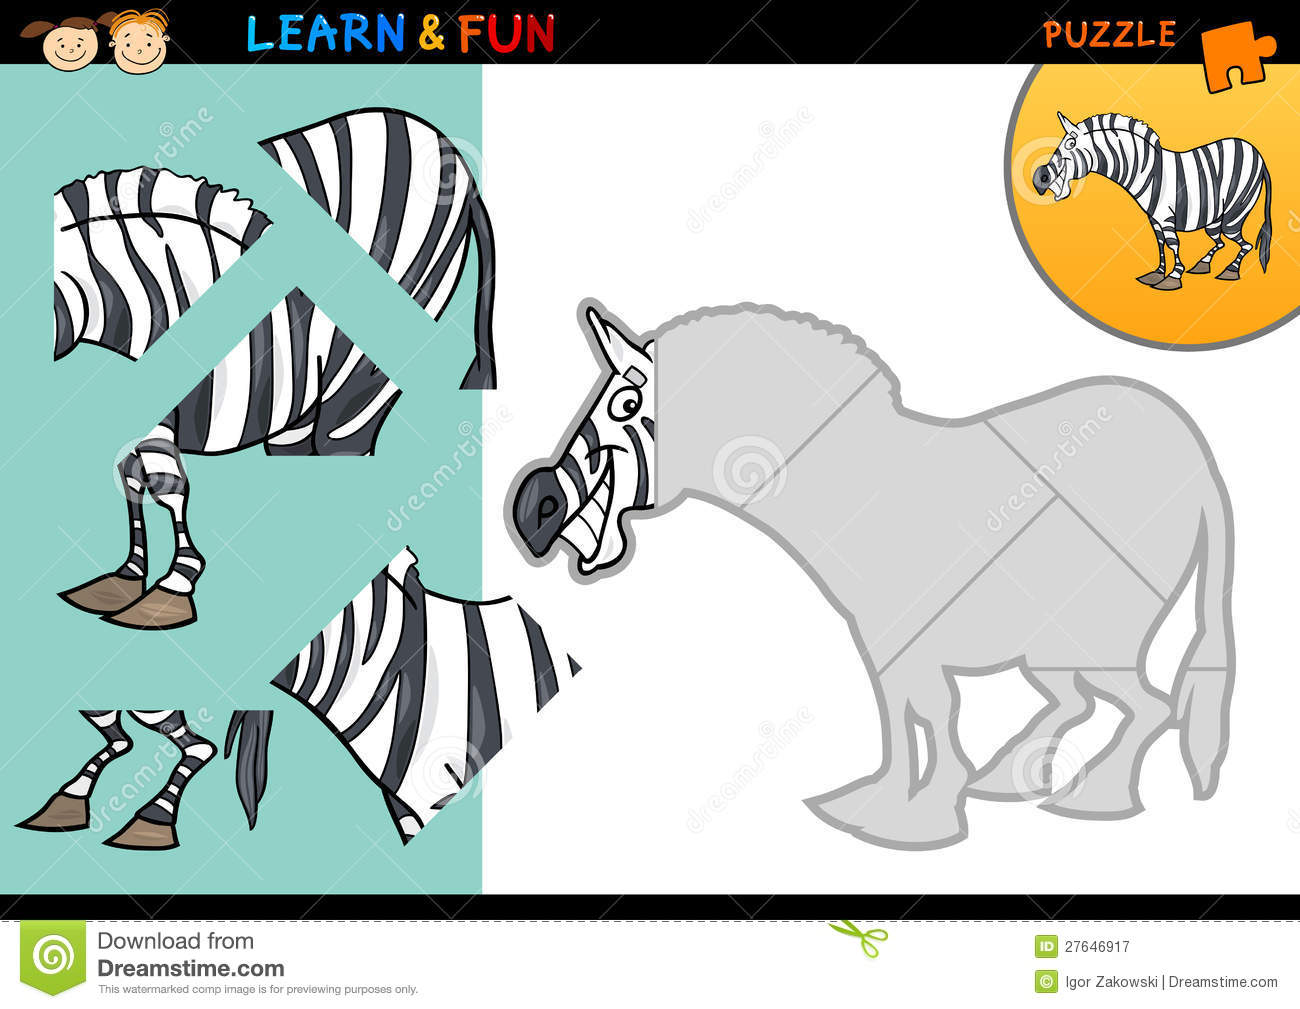 Uncategorized Zebra Game cartoon zebra puzzle game royalty free stock photography image photo download game